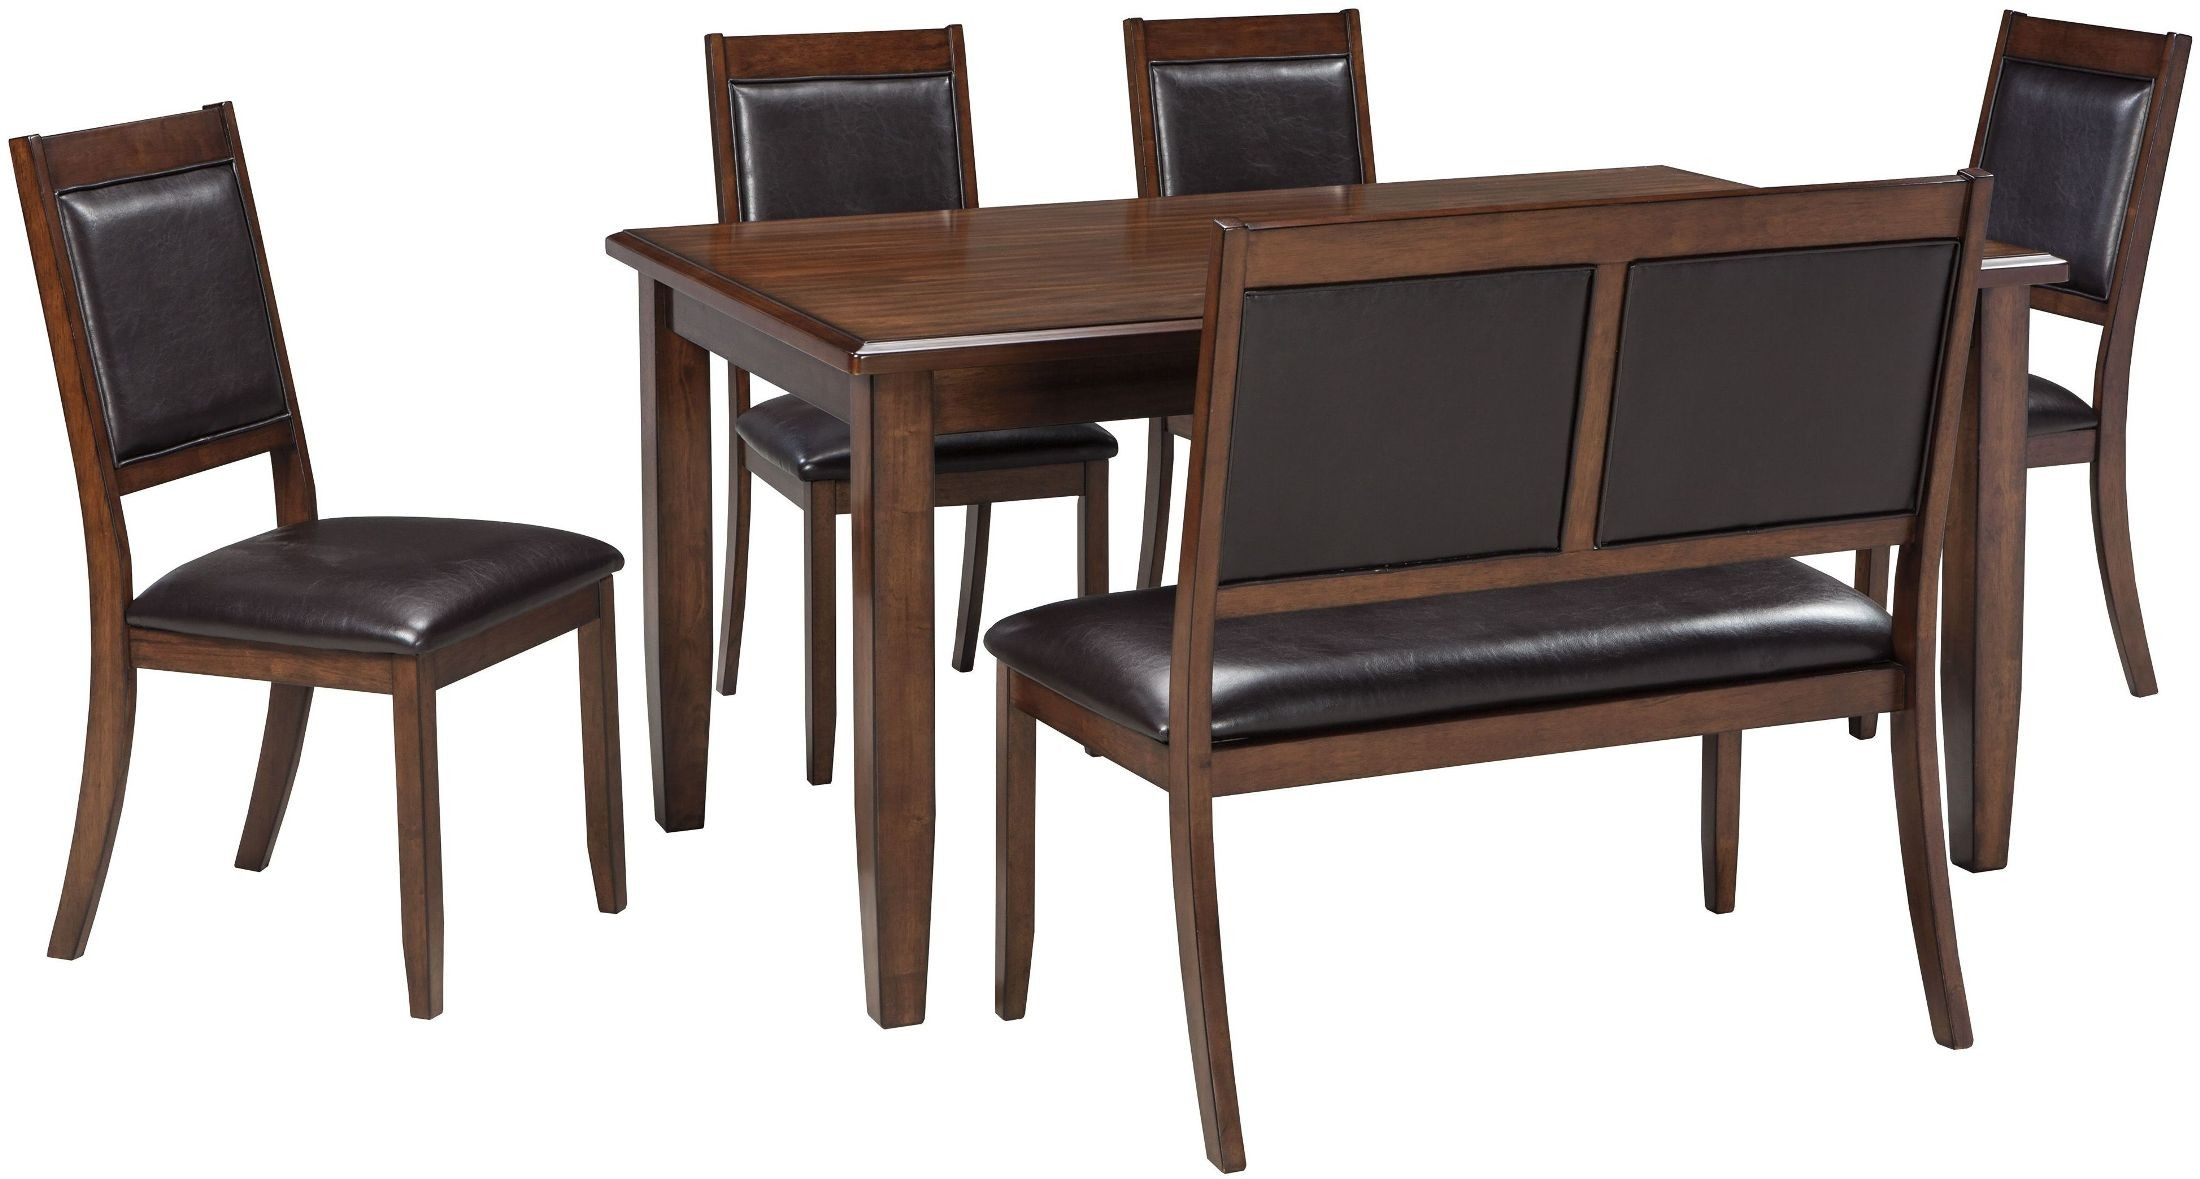 100 6 Piece Dining Room Sets Havana 6 Piece Dining  : d395 325 sw from 108.61.189.51 size 2200 x 1179 jpeg 261kB